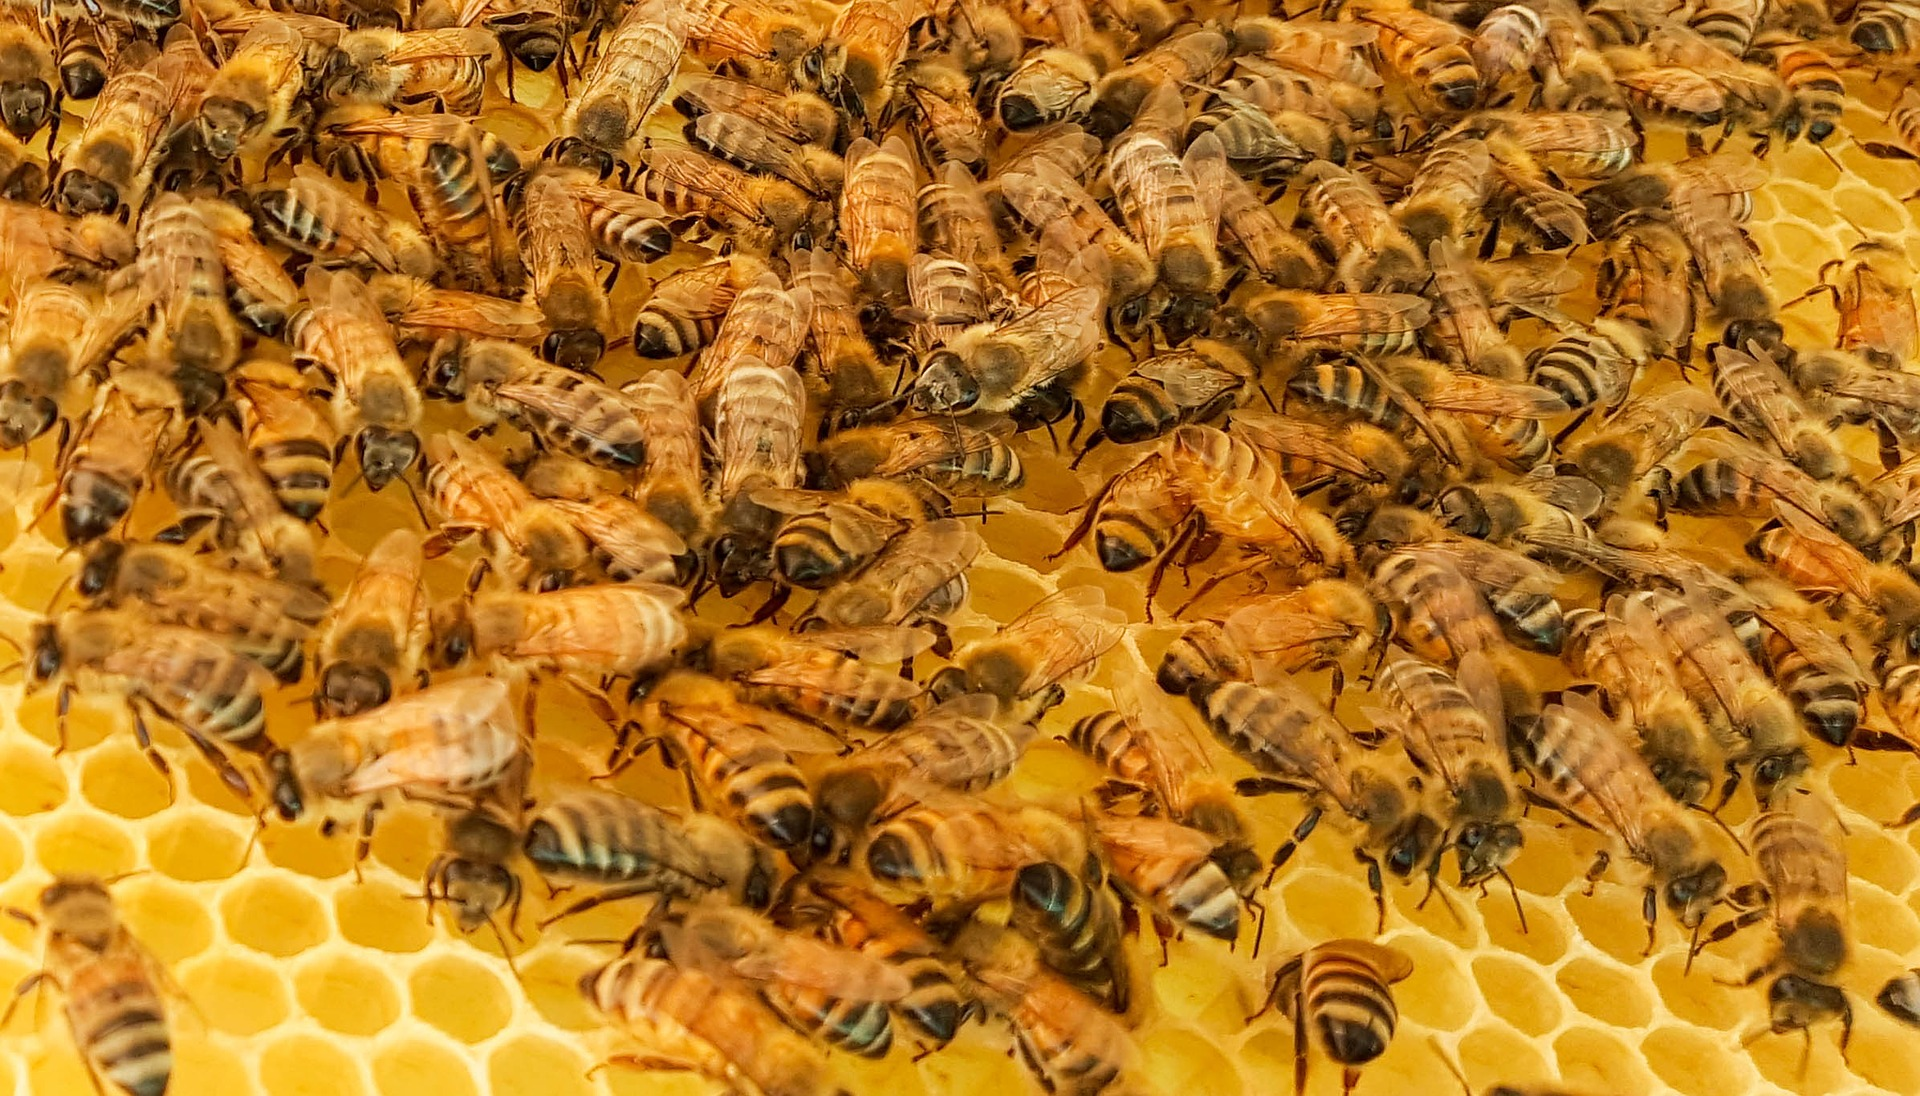 Animal of the month: the evolution of the imperfect honeybee